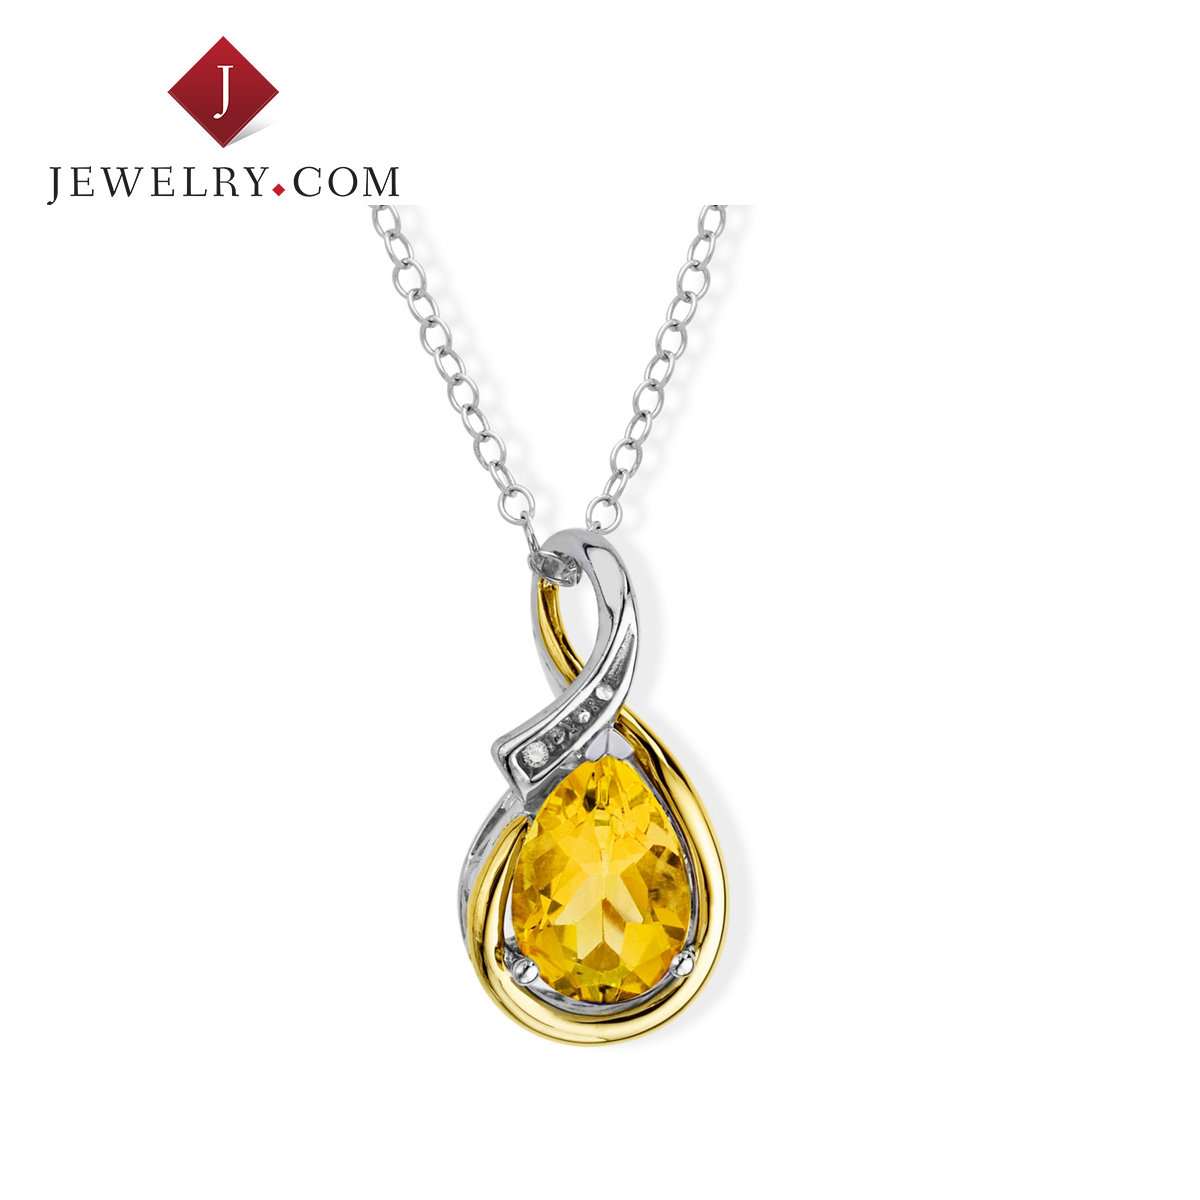 1.15 karat yellow Jewelry.com ms. sterling silver charm pendant k gold inlaid crystal diamond ornaments